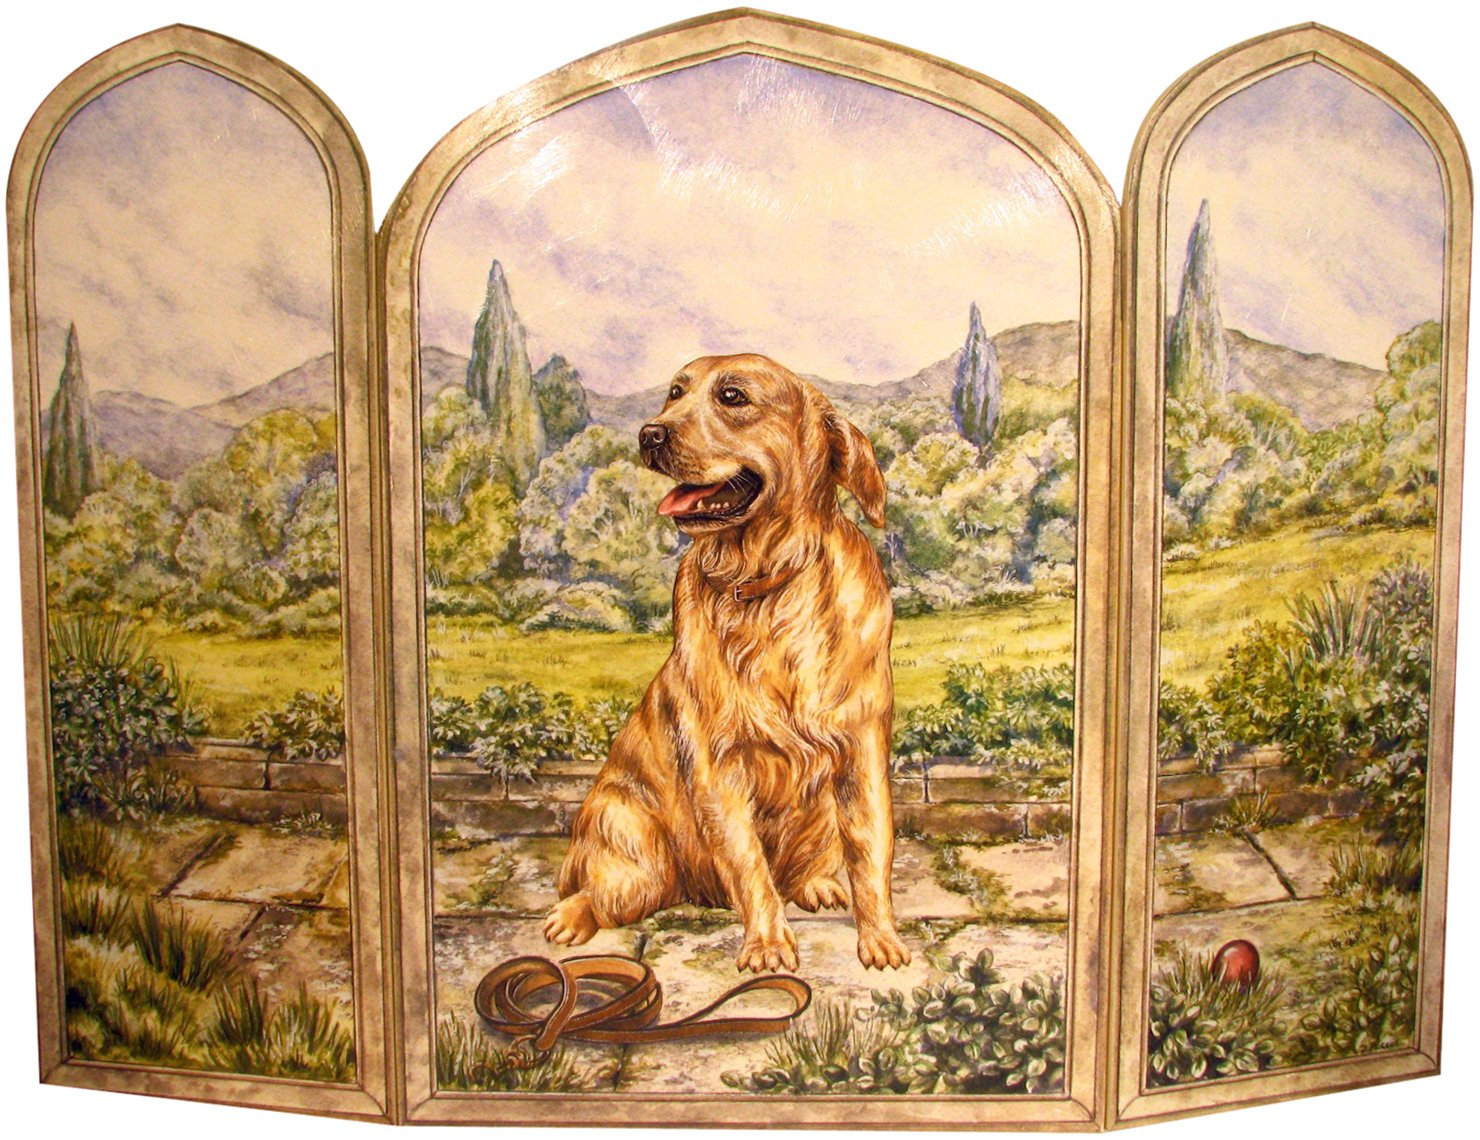 Stupell yorkie dog 3 panel decorative fireplace screen - Amazon Com Stupell Home D Cor 3 Panel Decorative Dog Fireplace Screen Golden Retriever 43 X 0 5 X 31 Proudly Made In Usa Home Kitchen